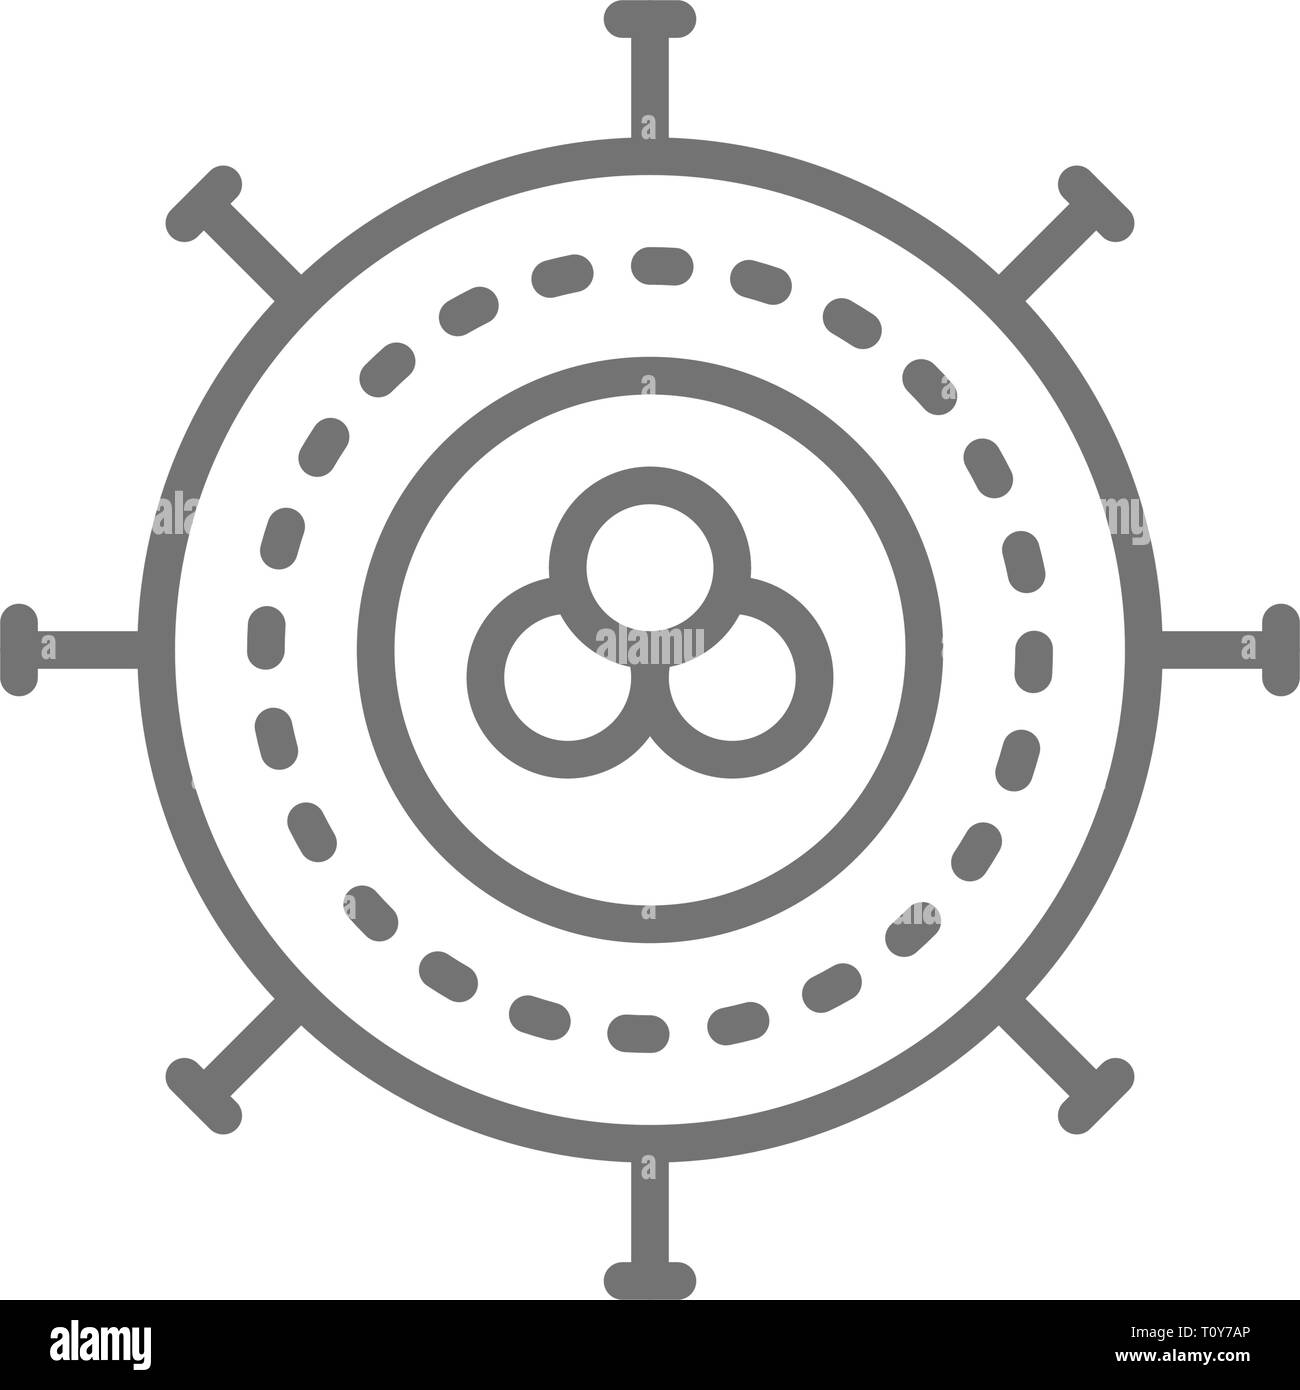 Cancer cell, virus, infection, oncology line icon. - Stock Image